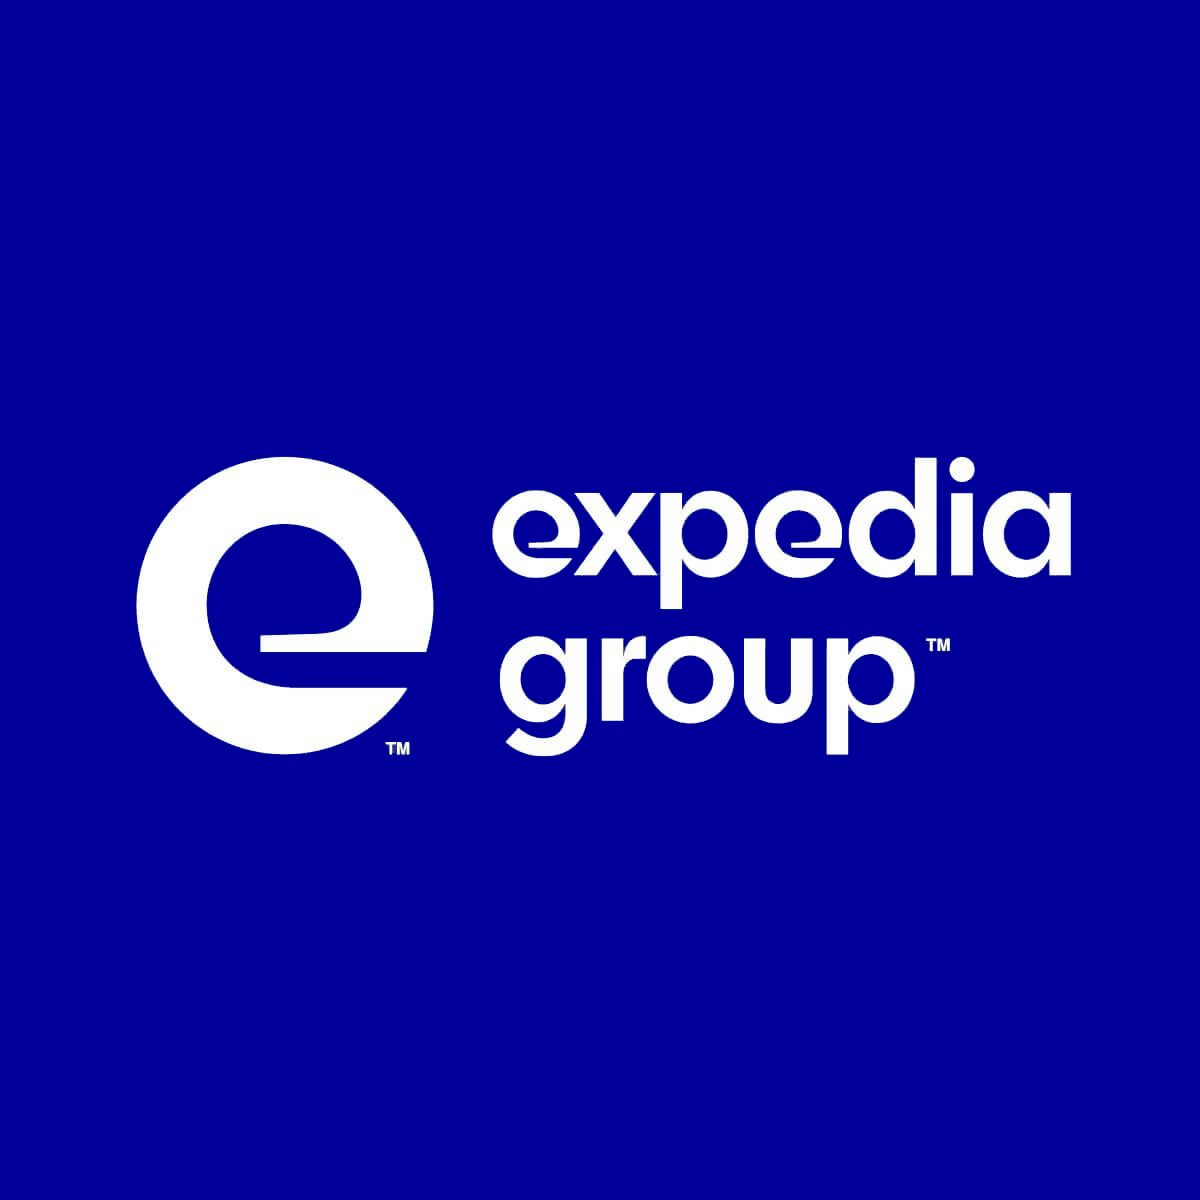 Expedia Logo - Expedia Group | Careers